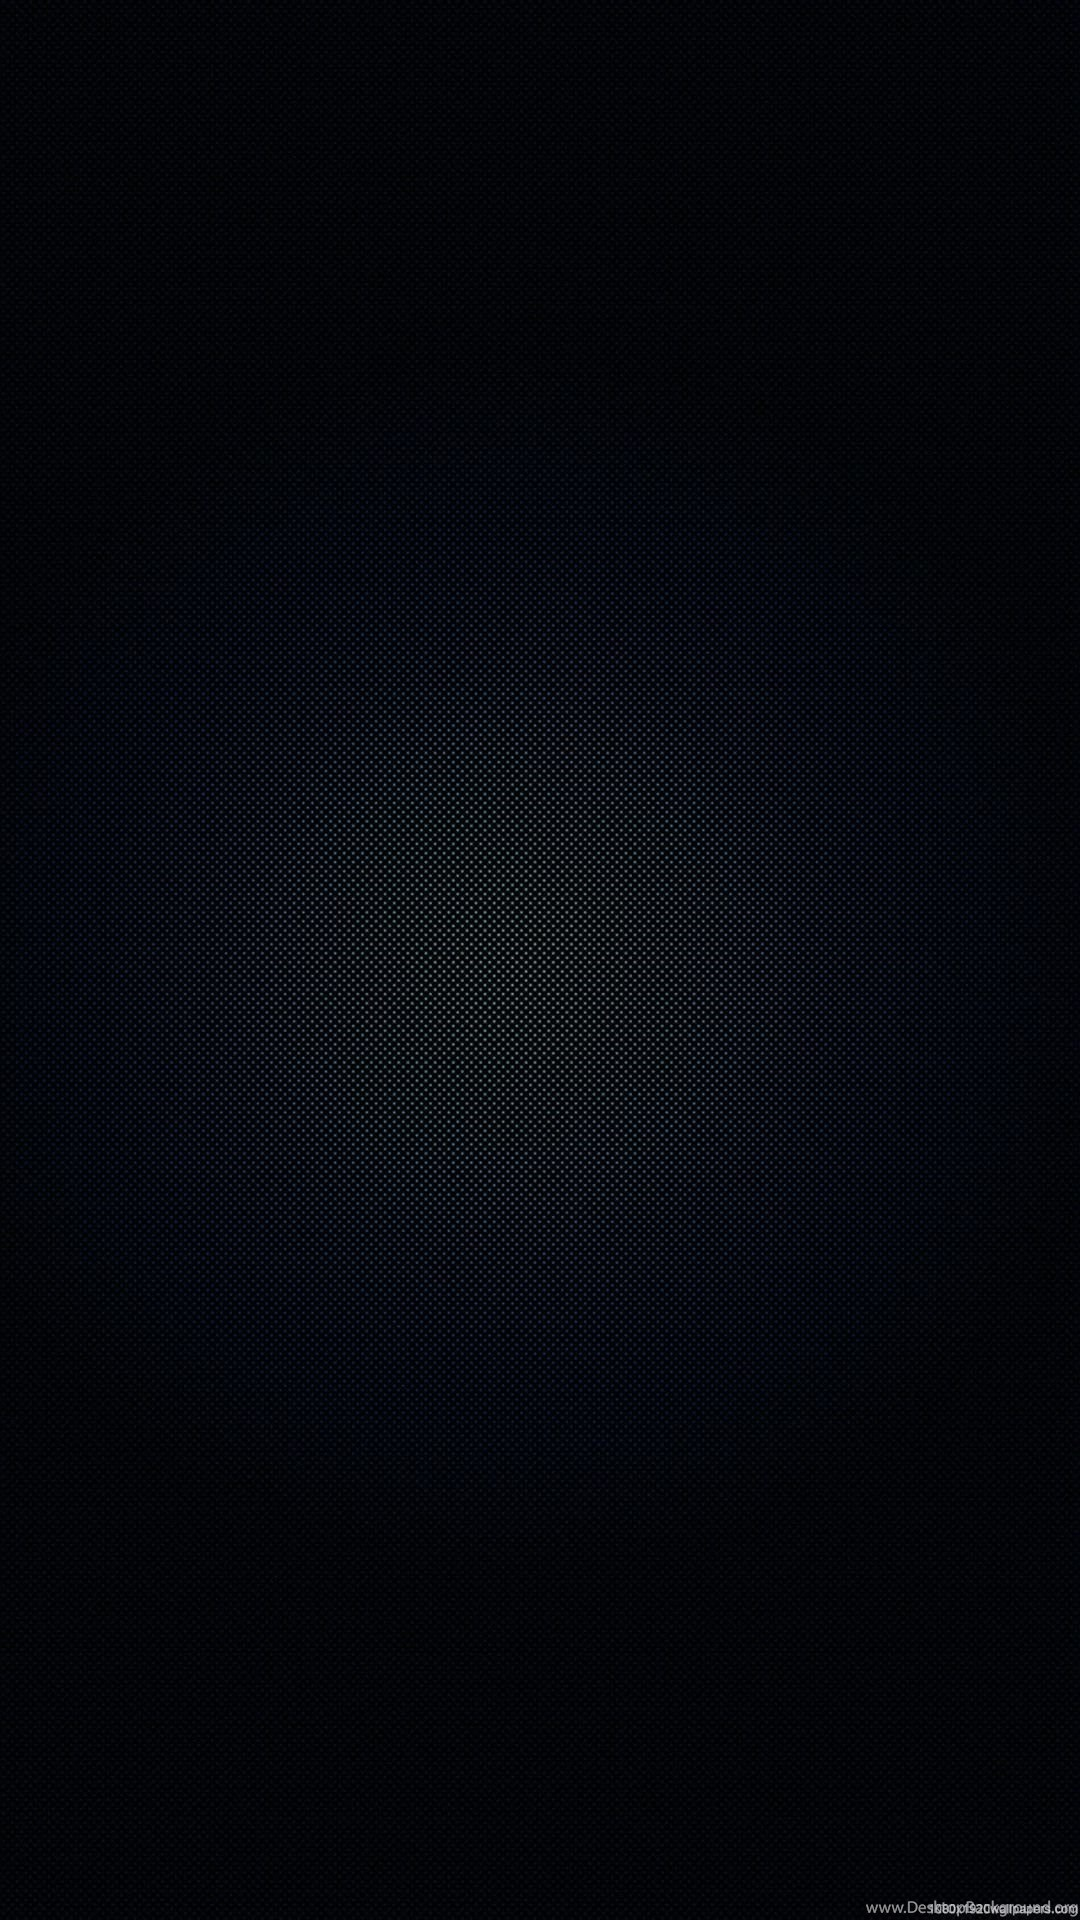 Black Wallpaper 1080x1920 Posted By Ryan Cunningham